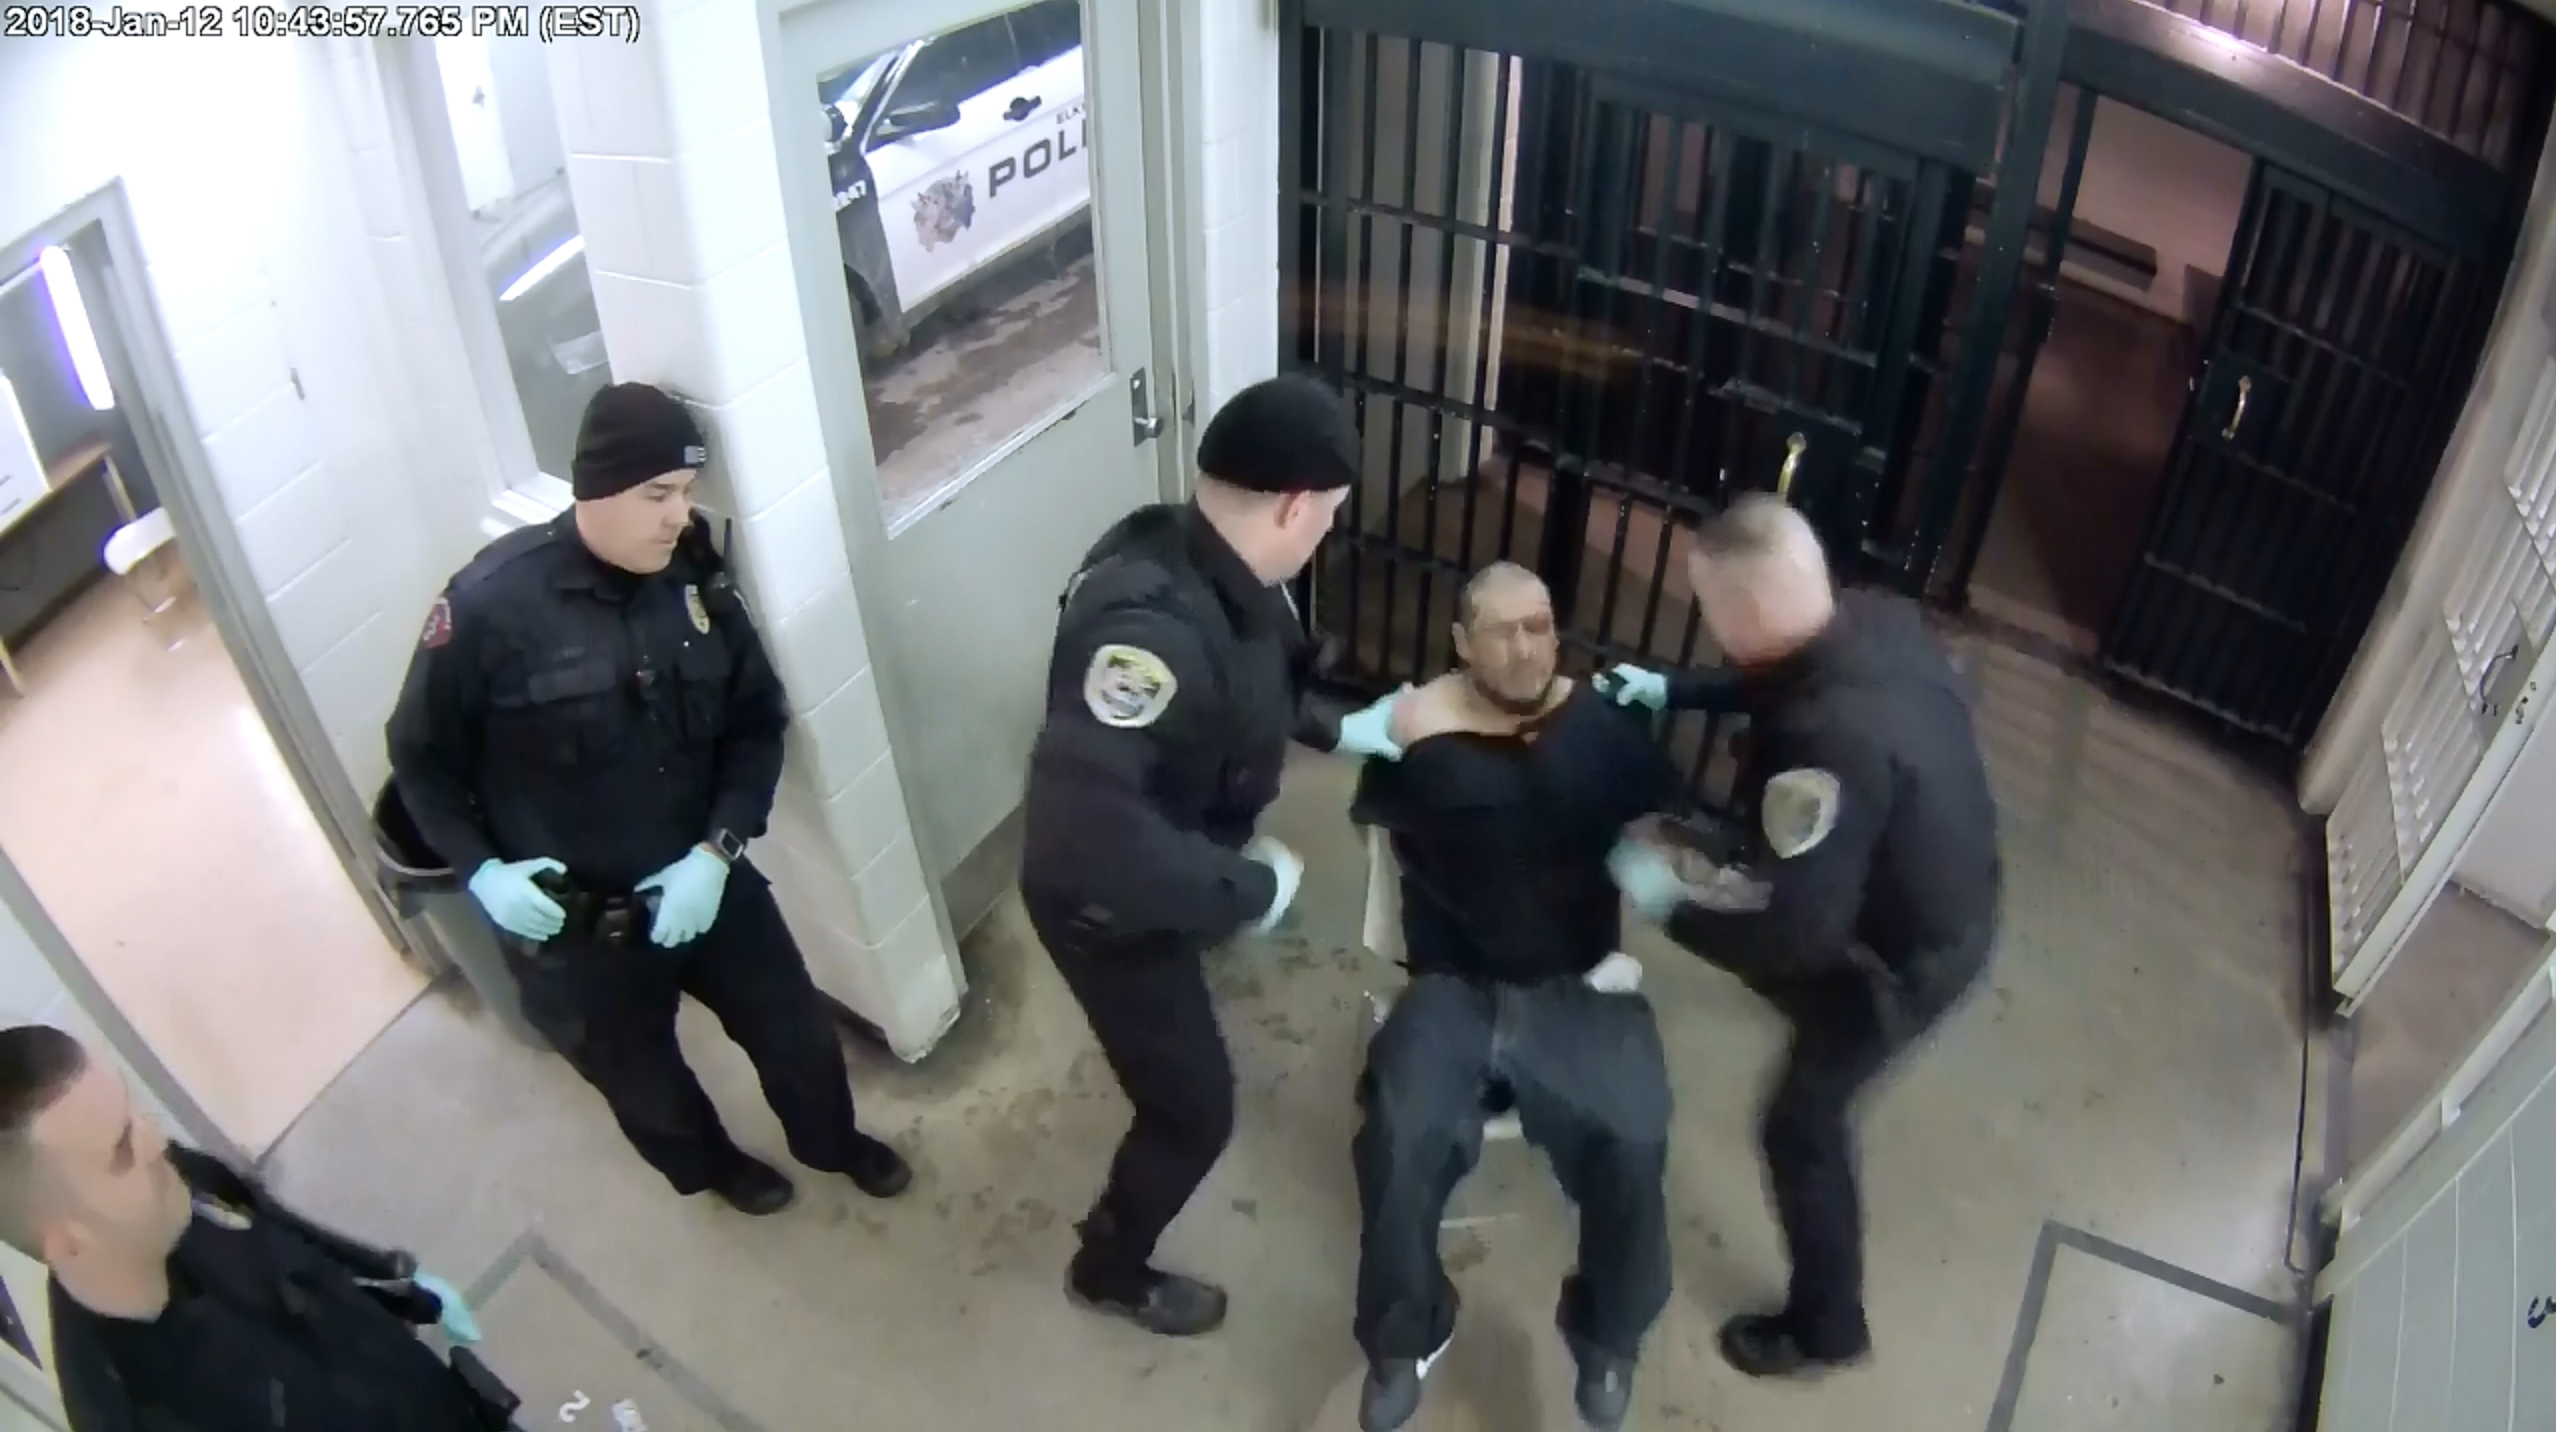 Two Indiana officers indicted for allegedly beating a handcuffed man